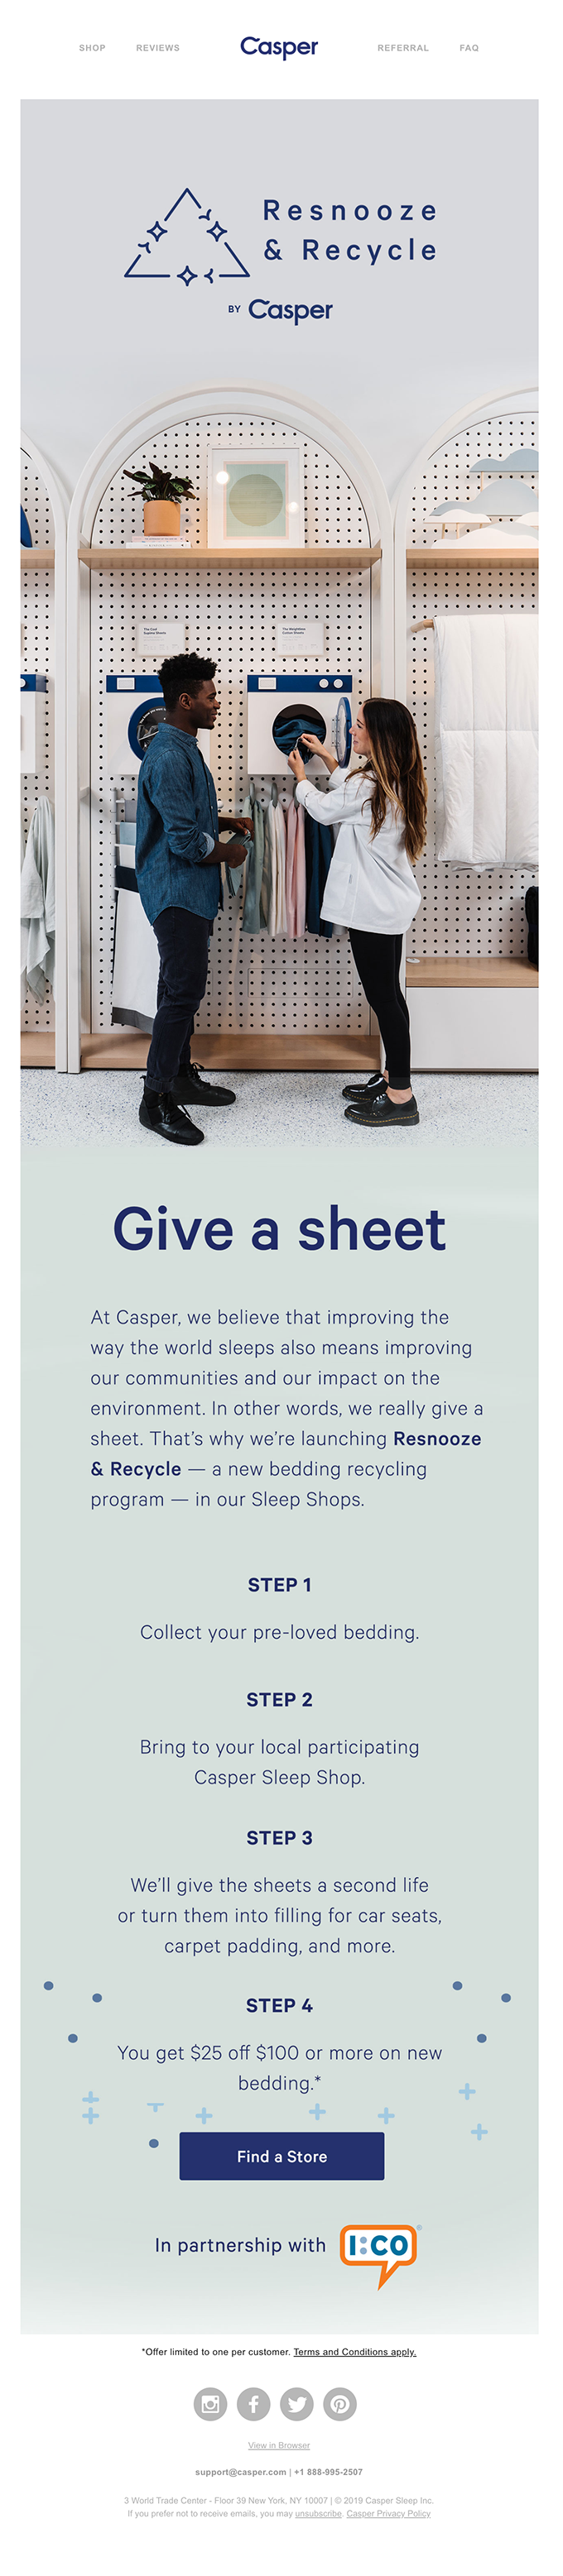 Give a Sheet. Get $25.